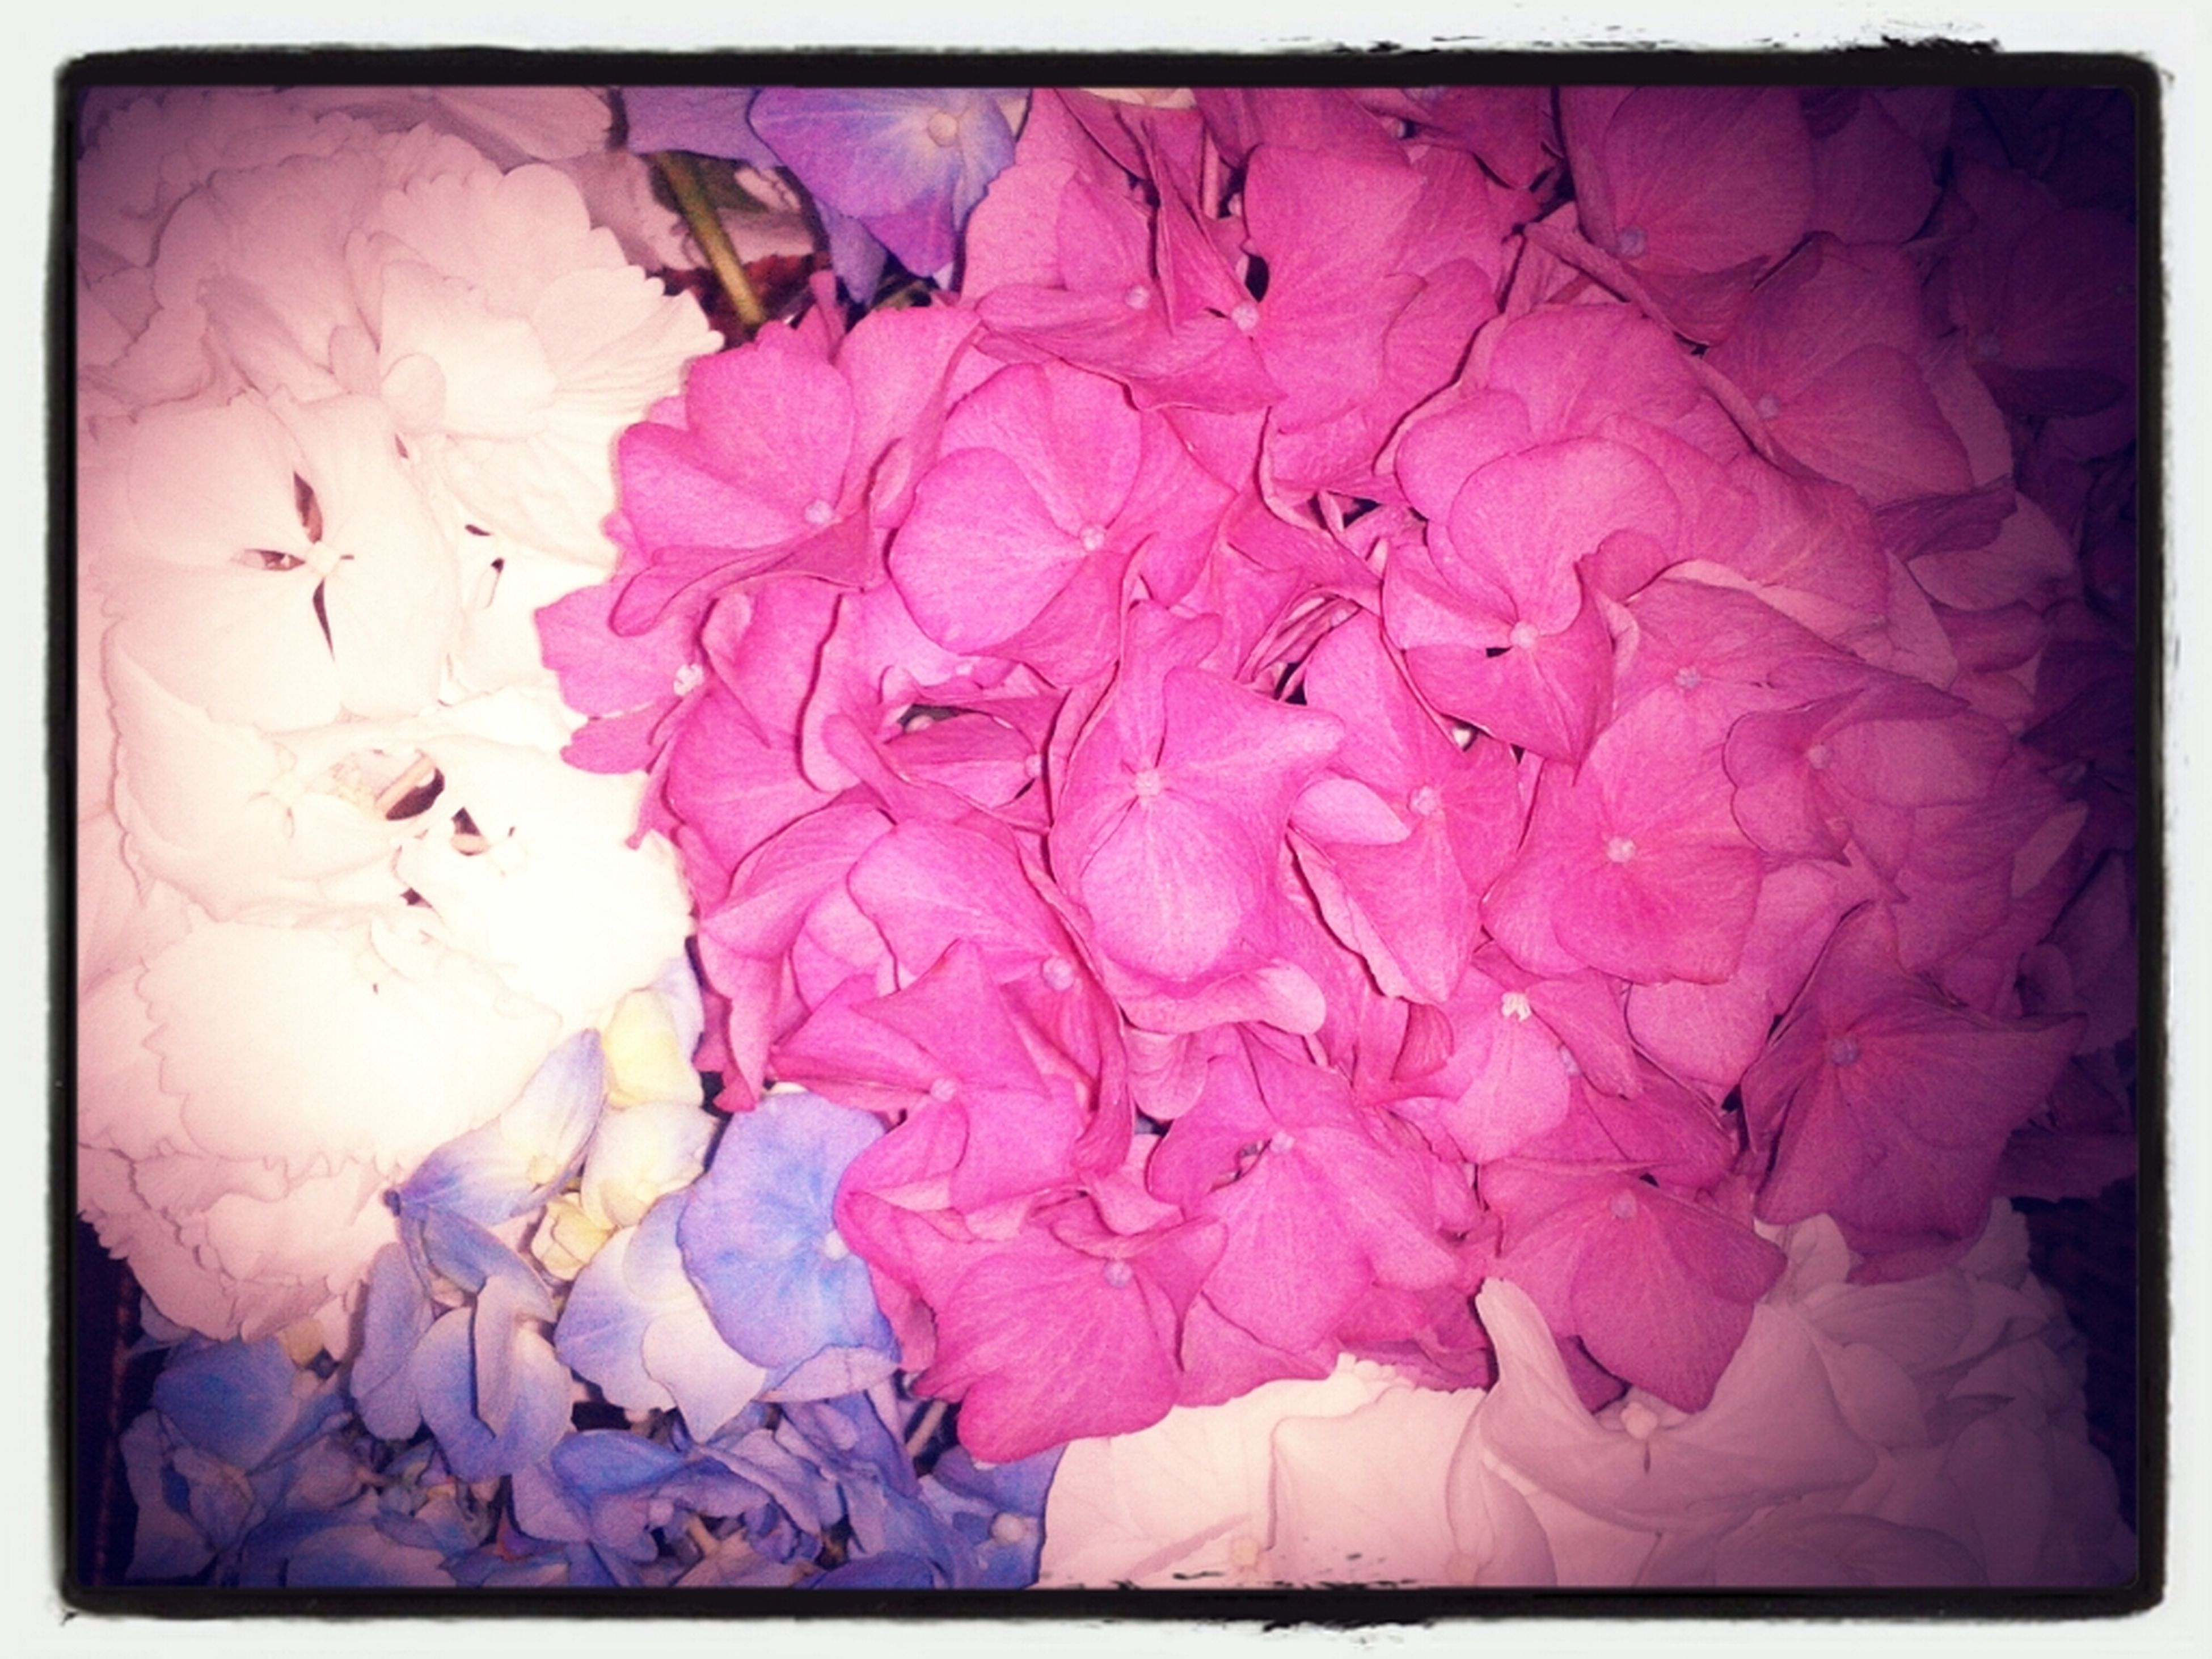 transfer print, auto post production filter, flower, indoors, pink color, fragility, close-up, petal, wall - building feature, high angle view, no people, full frame, multi colored, purple, pink, frame, nature, backgrounds, paper, floral pattern